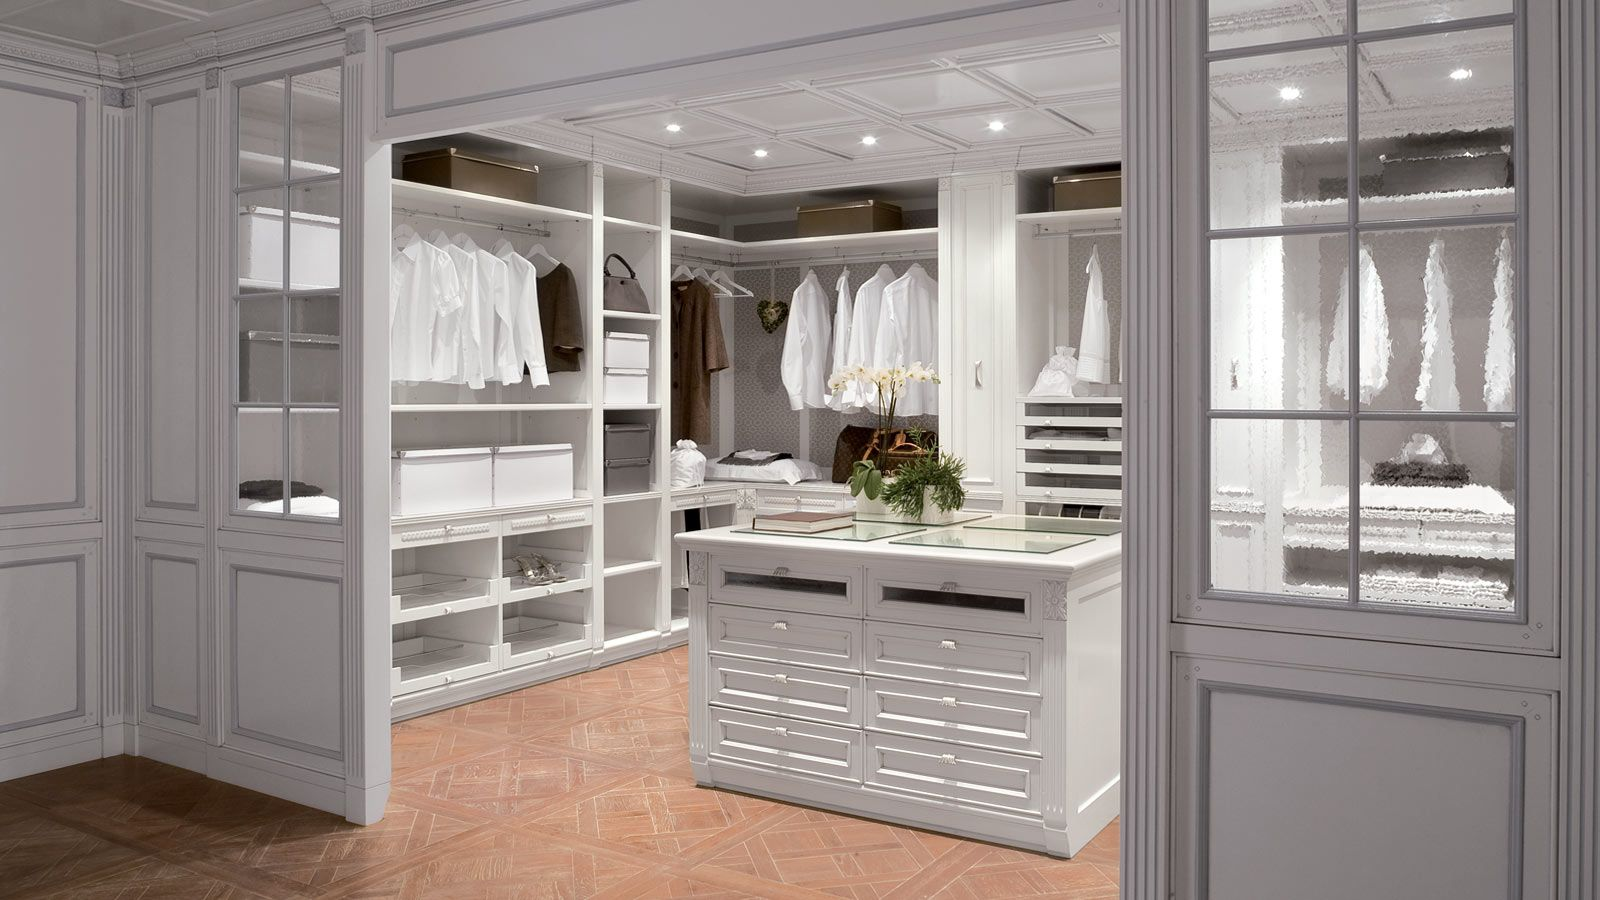 17 Best images about Walk-ins on Pinterest | Shoe closet, The closet and  Dream closets